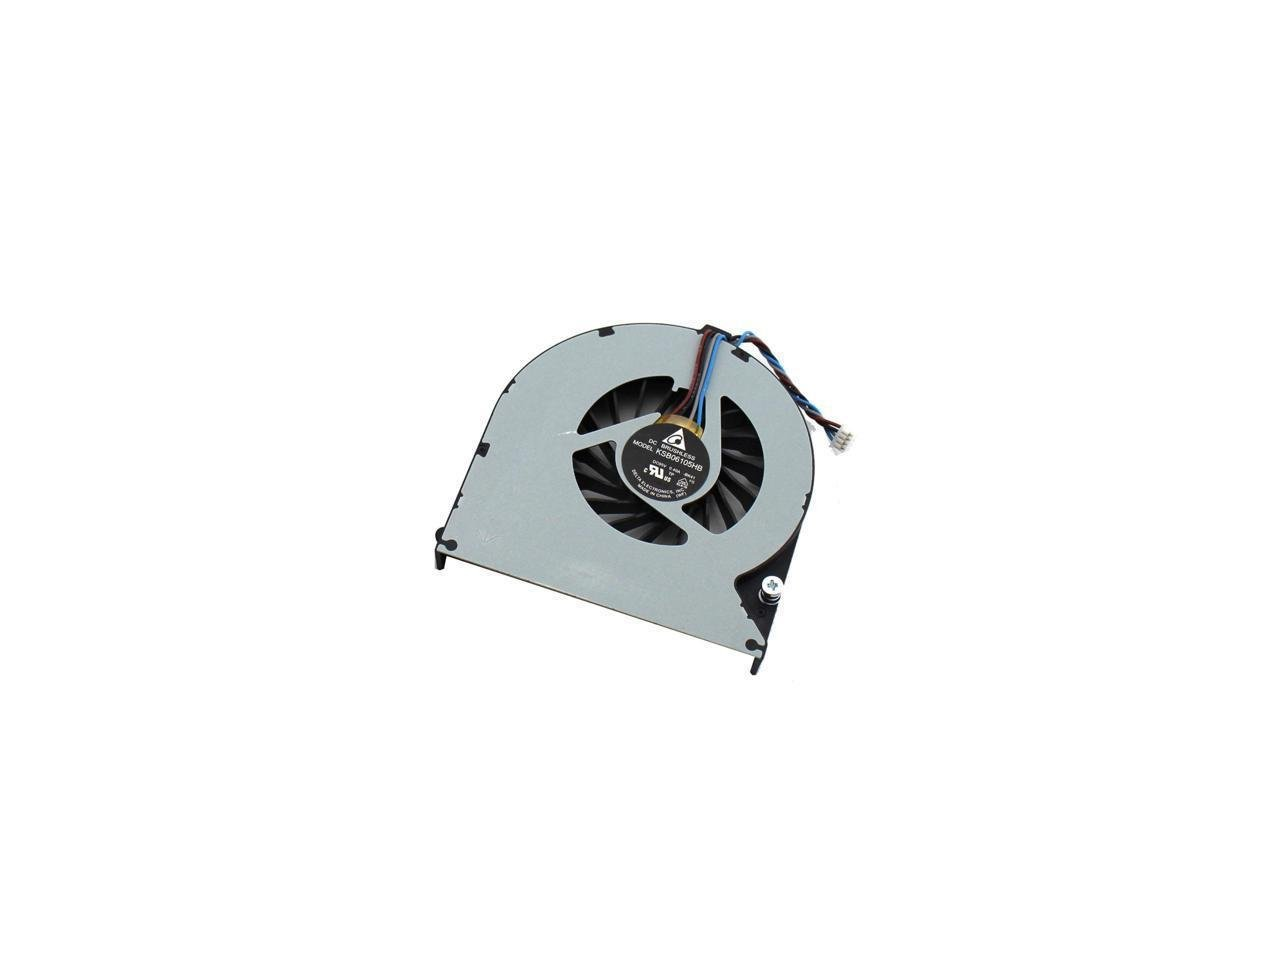 New Laptop CPU Cooling Fan for Toshiba Satellite P870 P870D P875 P875D P870-004 P870-11J P870-11K P870-303 P870-308 P875-S7310 P875-S7102 P875-S7200 P875-31l Series